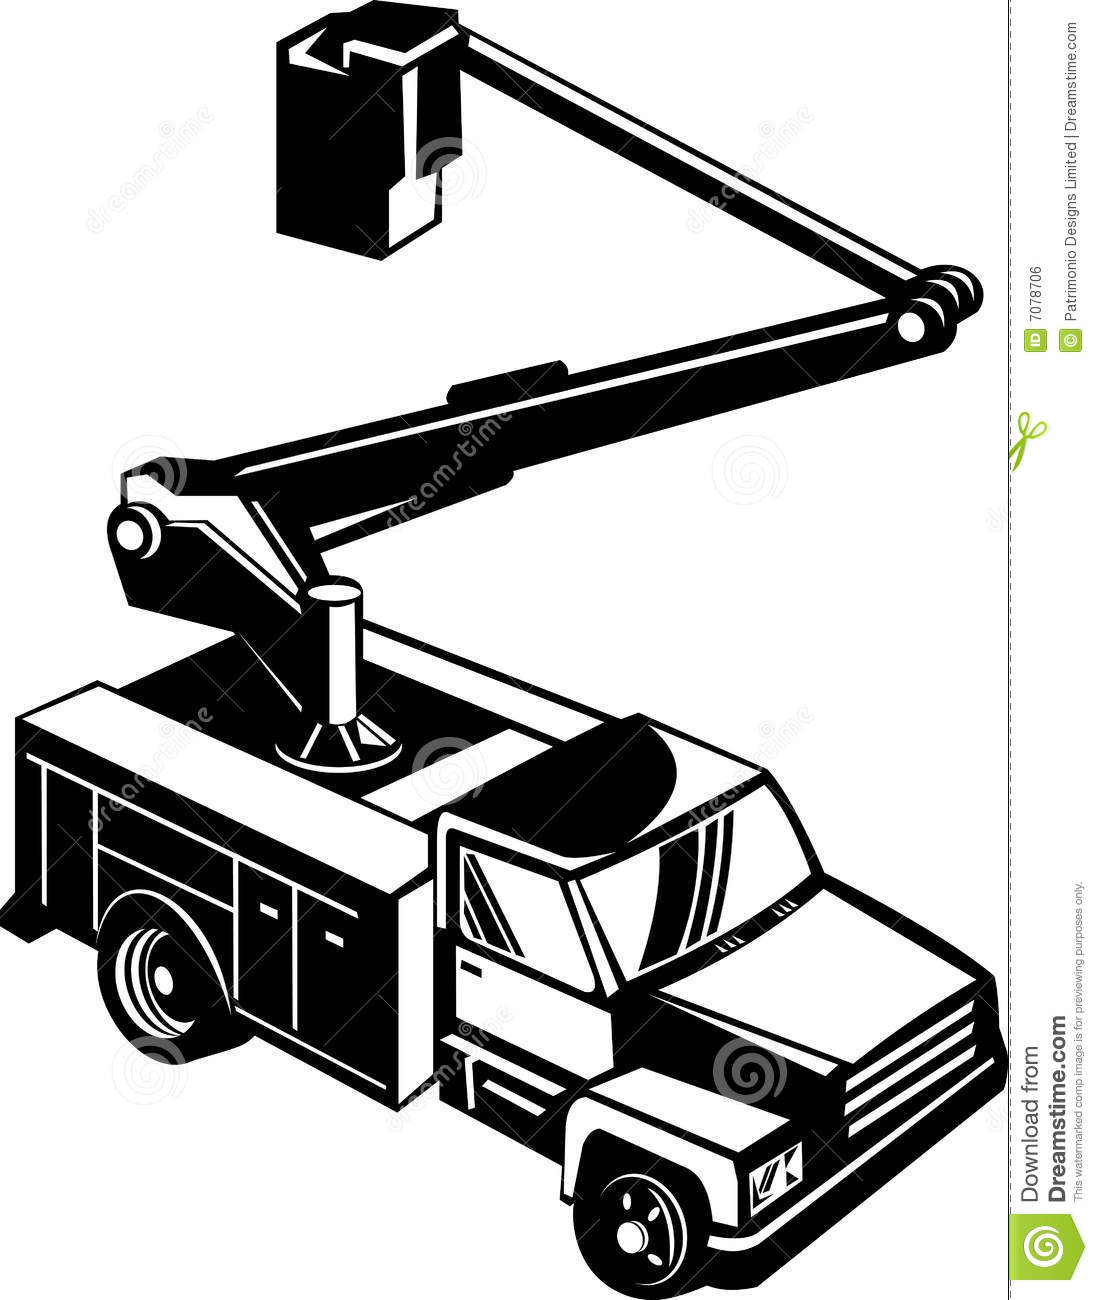 Bucket Truck Cherry Picker Royalty Free Stock Image - Image: 7078706